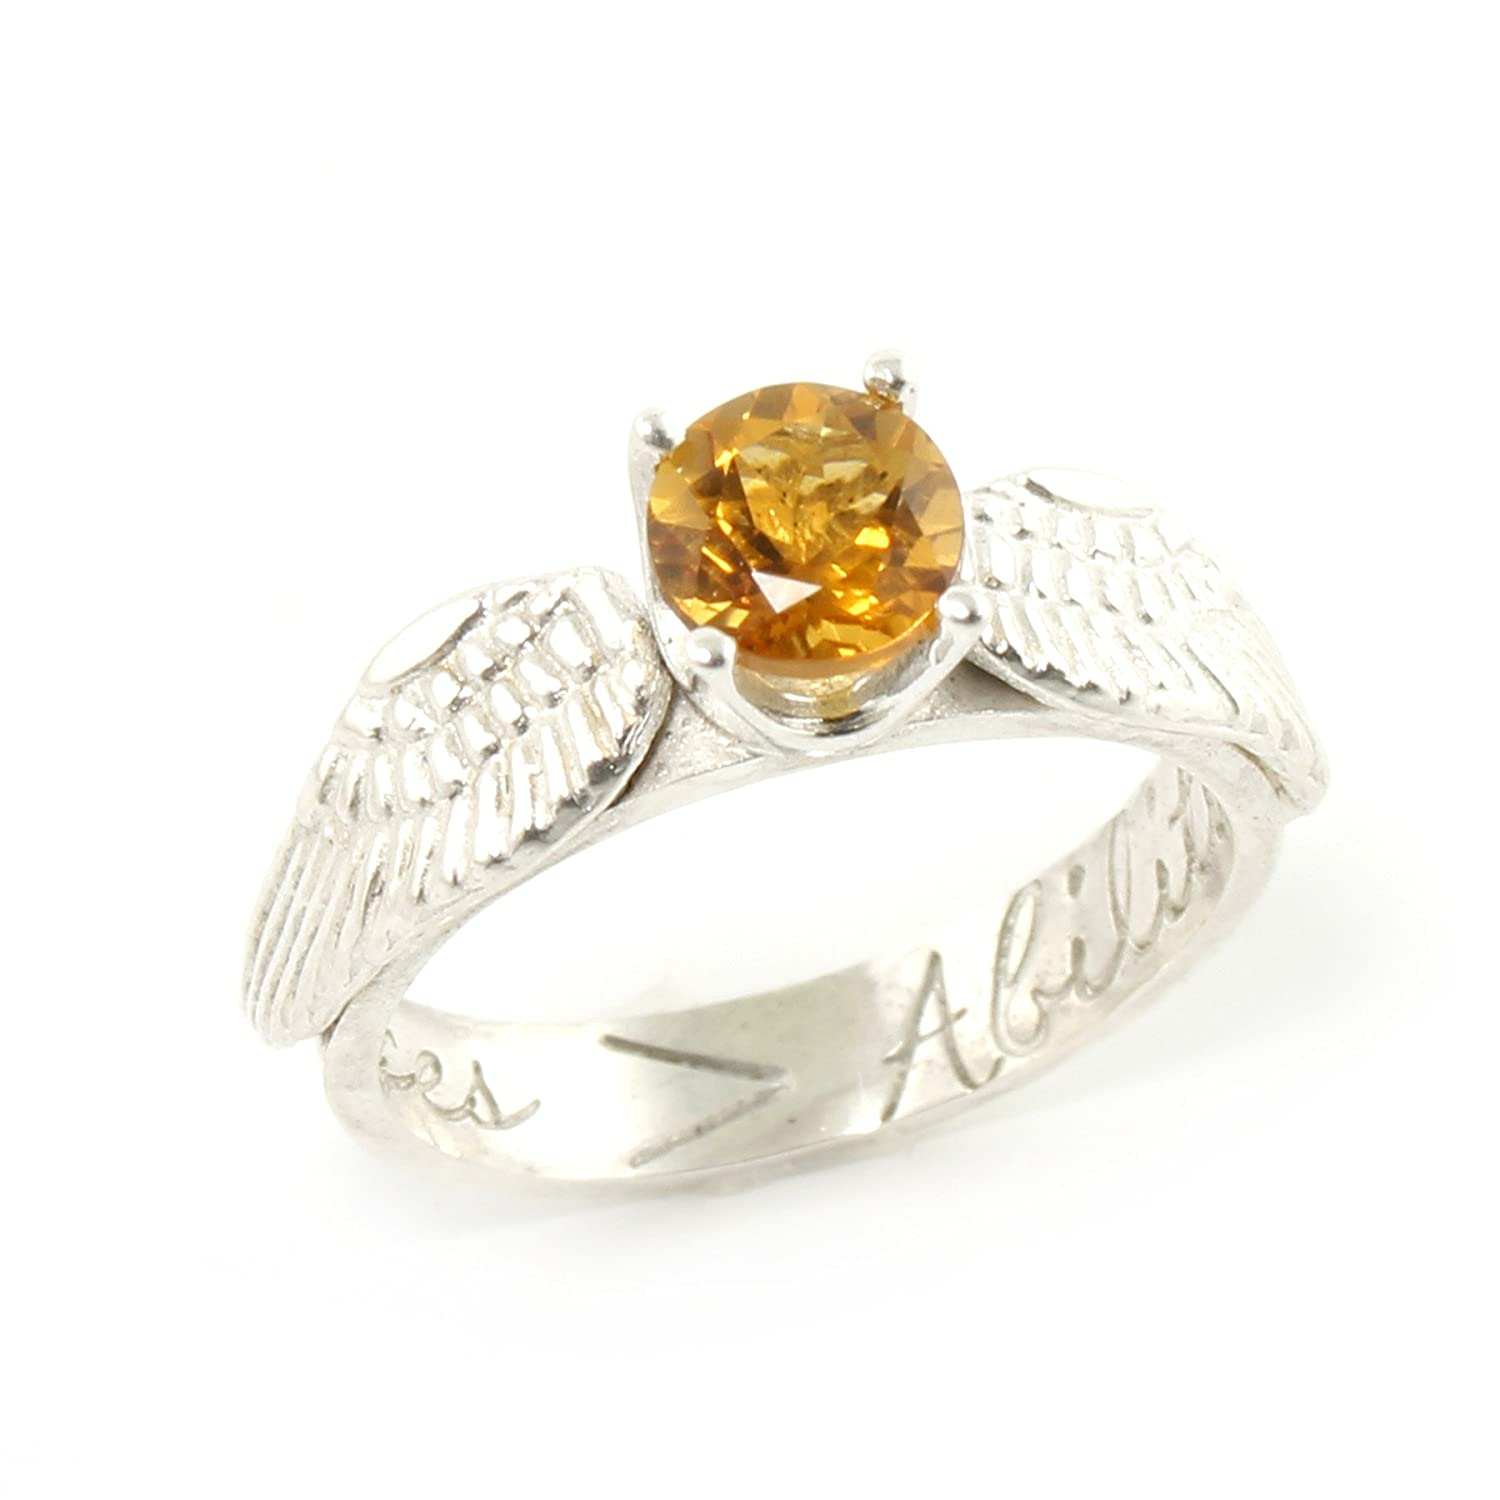 d8bd347ef0f39 Golden Snitch Engagement Ring - Nerdy Promise Ring